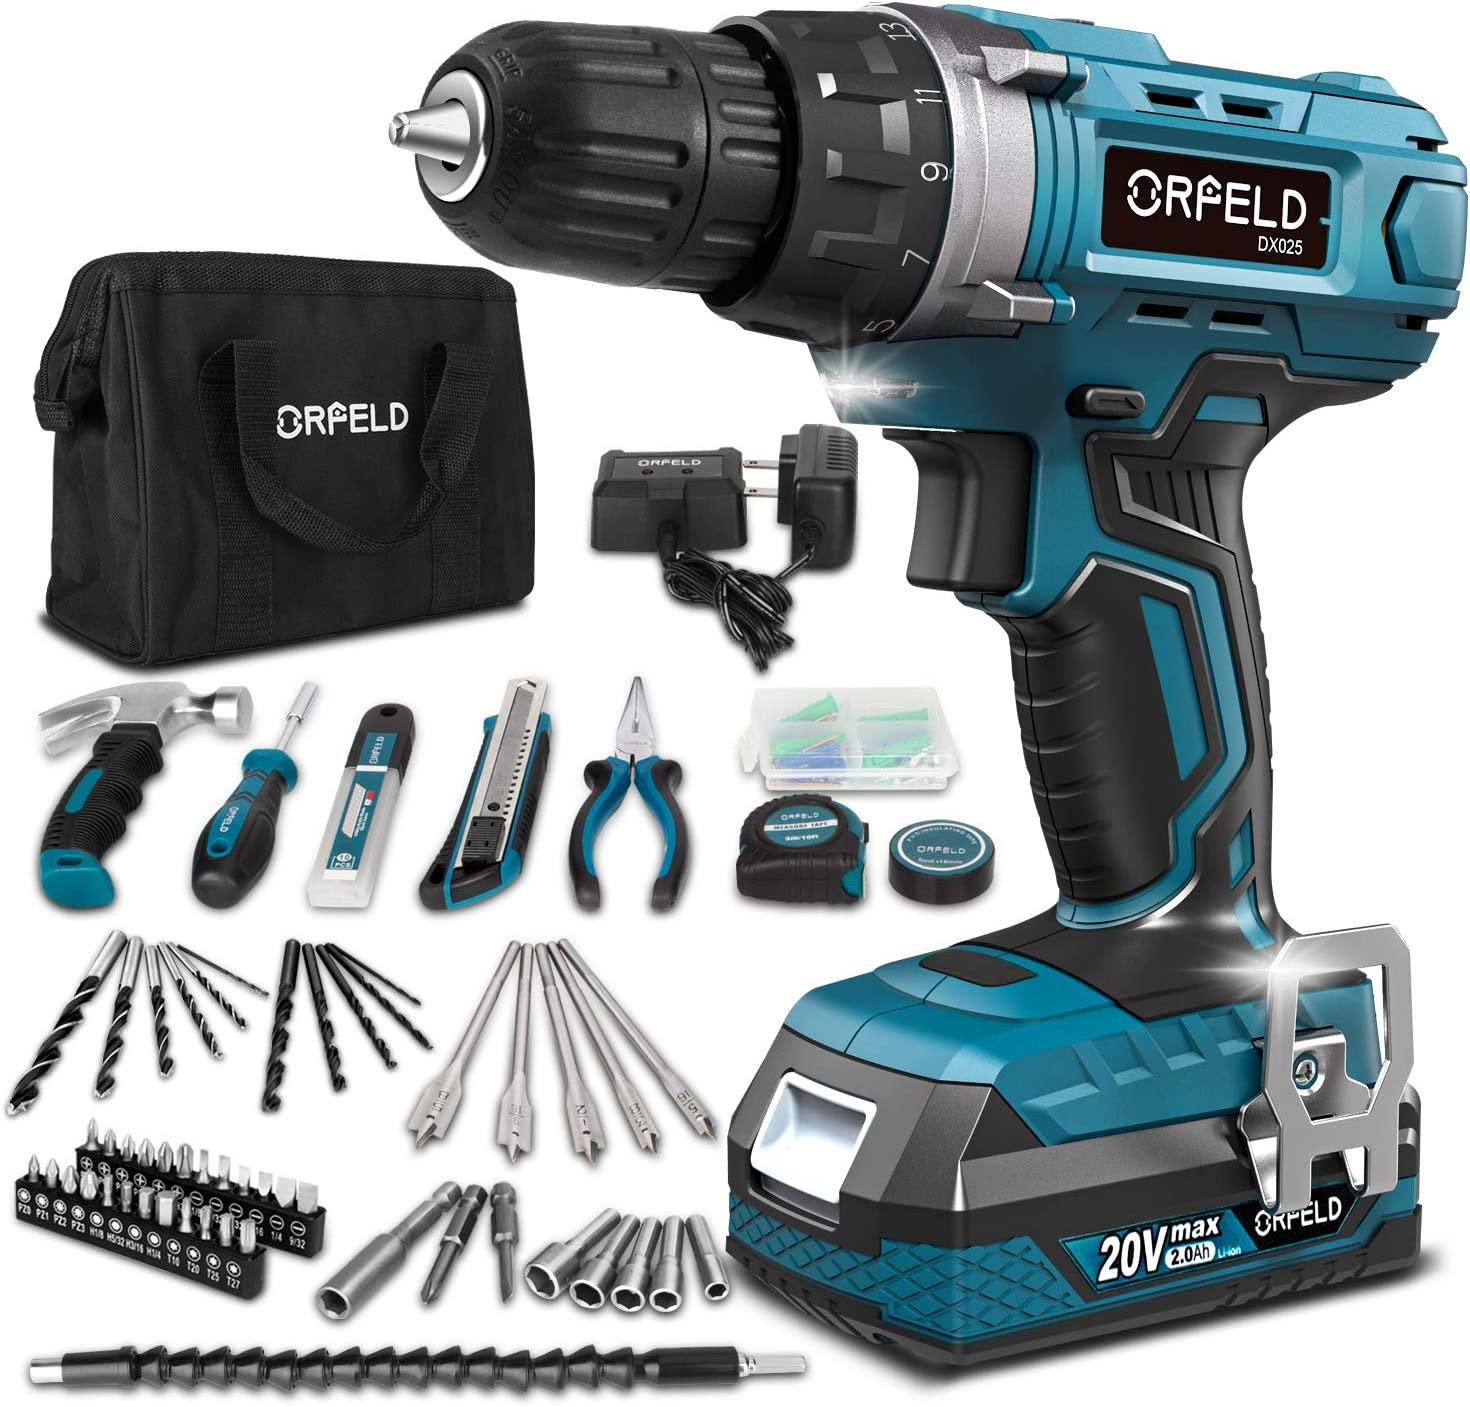 ORFELD Cordless Drill Power Drill Driver Home Tool Kit 20V Max 2.0Ah Battery, 165 Pcs Accessories, Built-in LED, 2 Variable Speed, 3/8'' Metal Keyless Chuck for Drilling Wood, Metal, Plastic. Blue